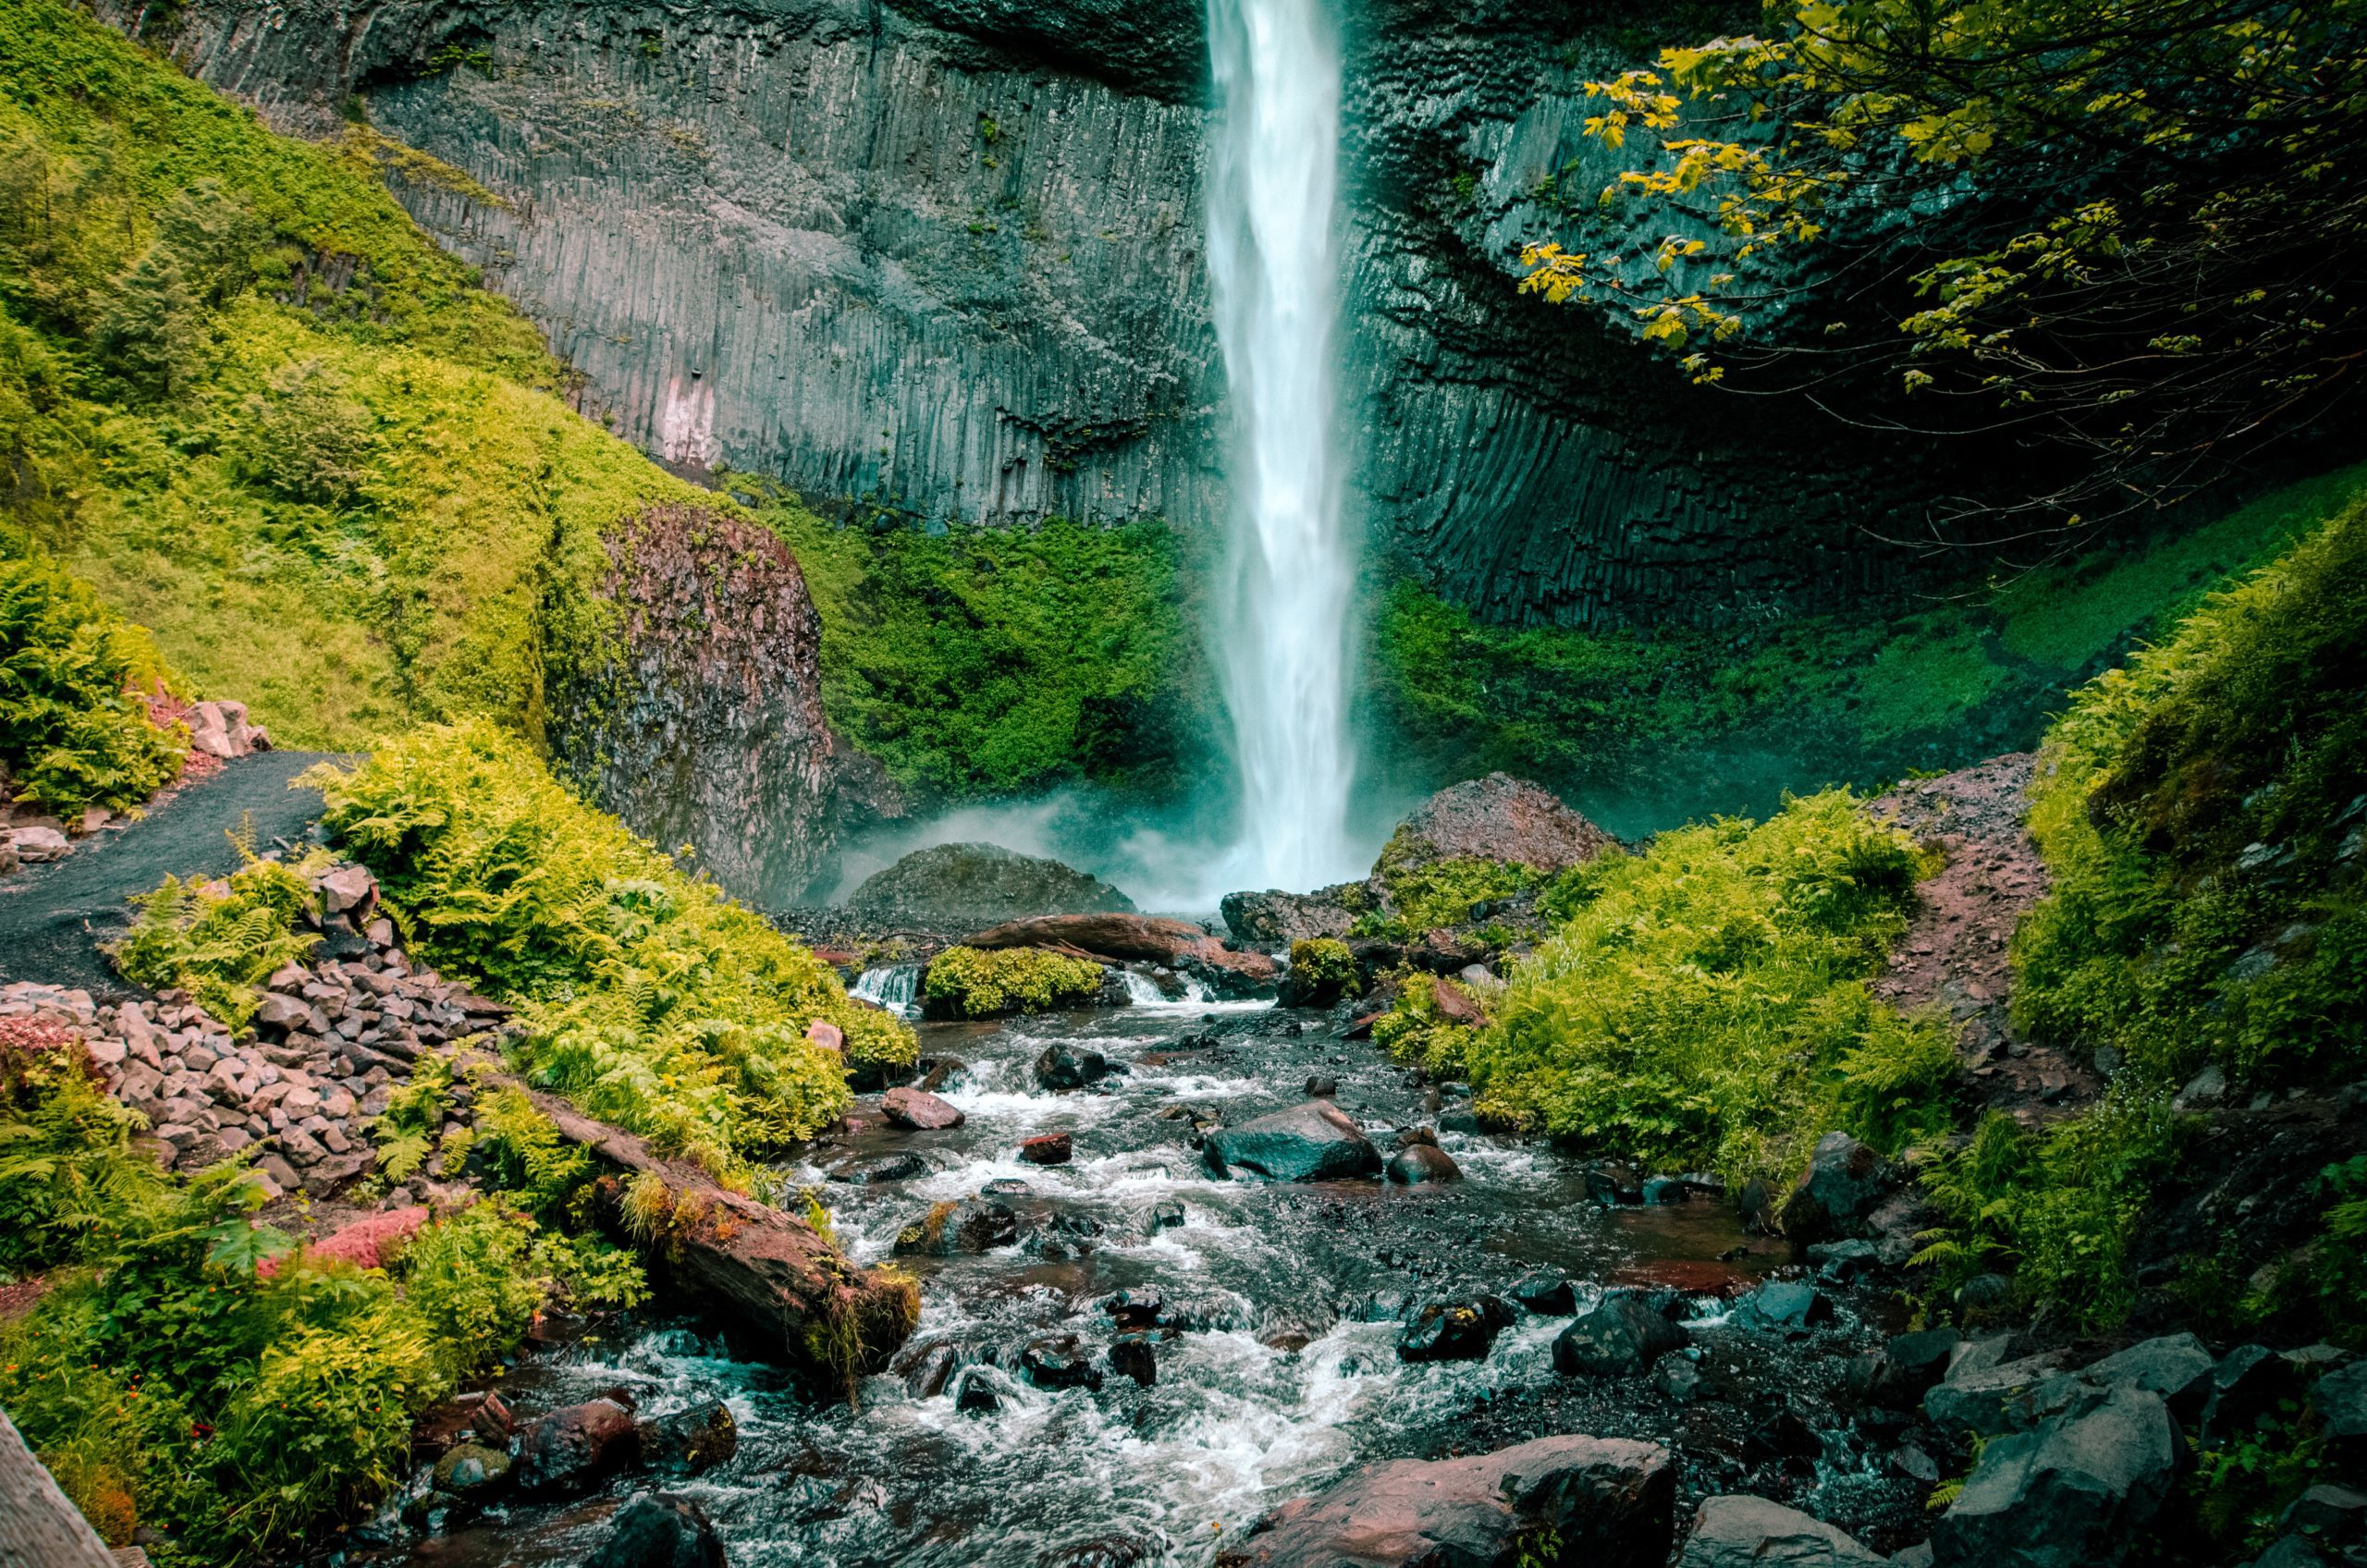 cascade-creek-environment-falls-612999